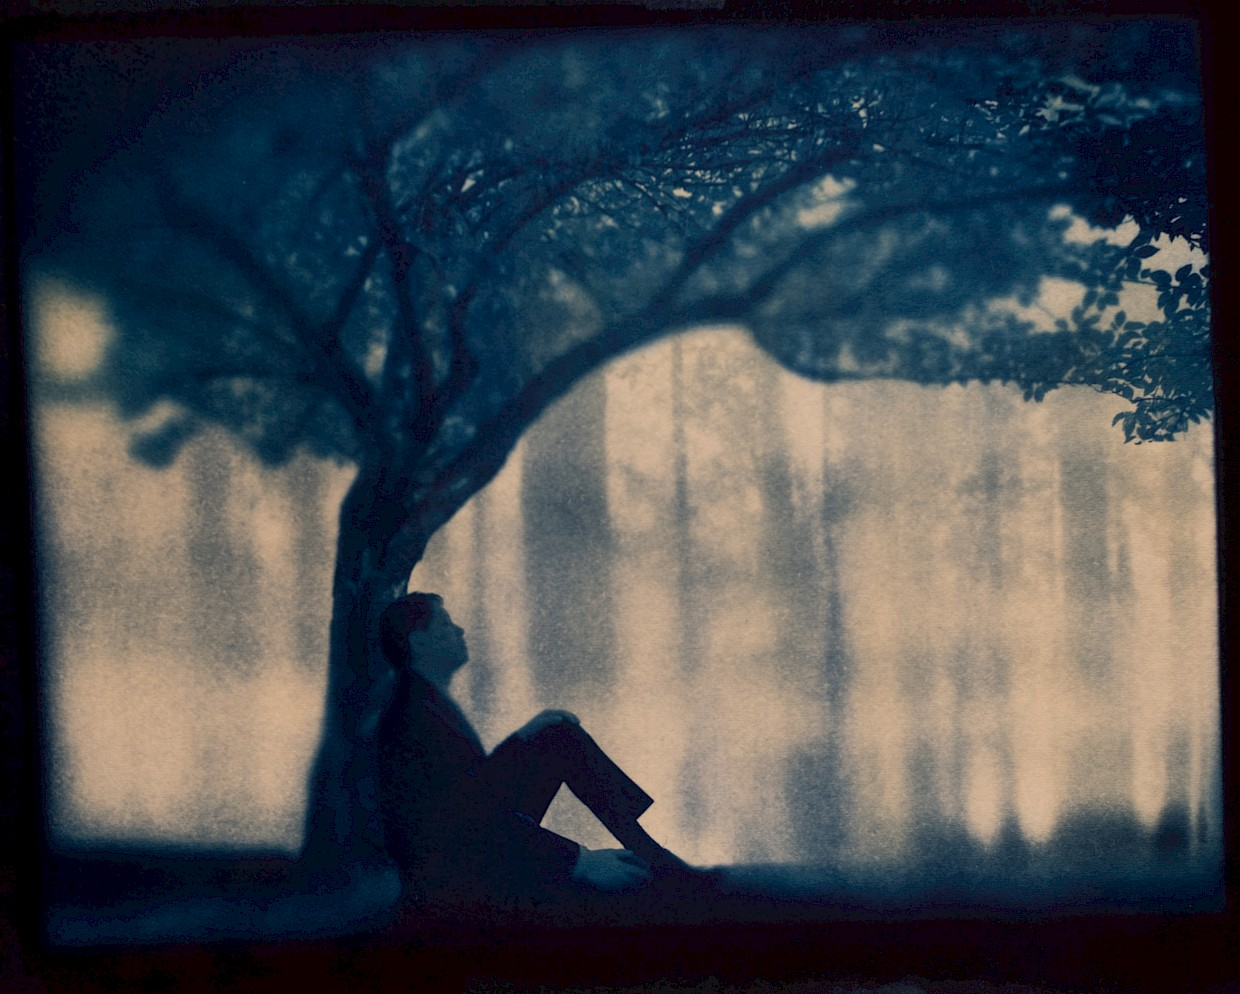 a man sleeps underneath a tree in a forest and he is dreaming